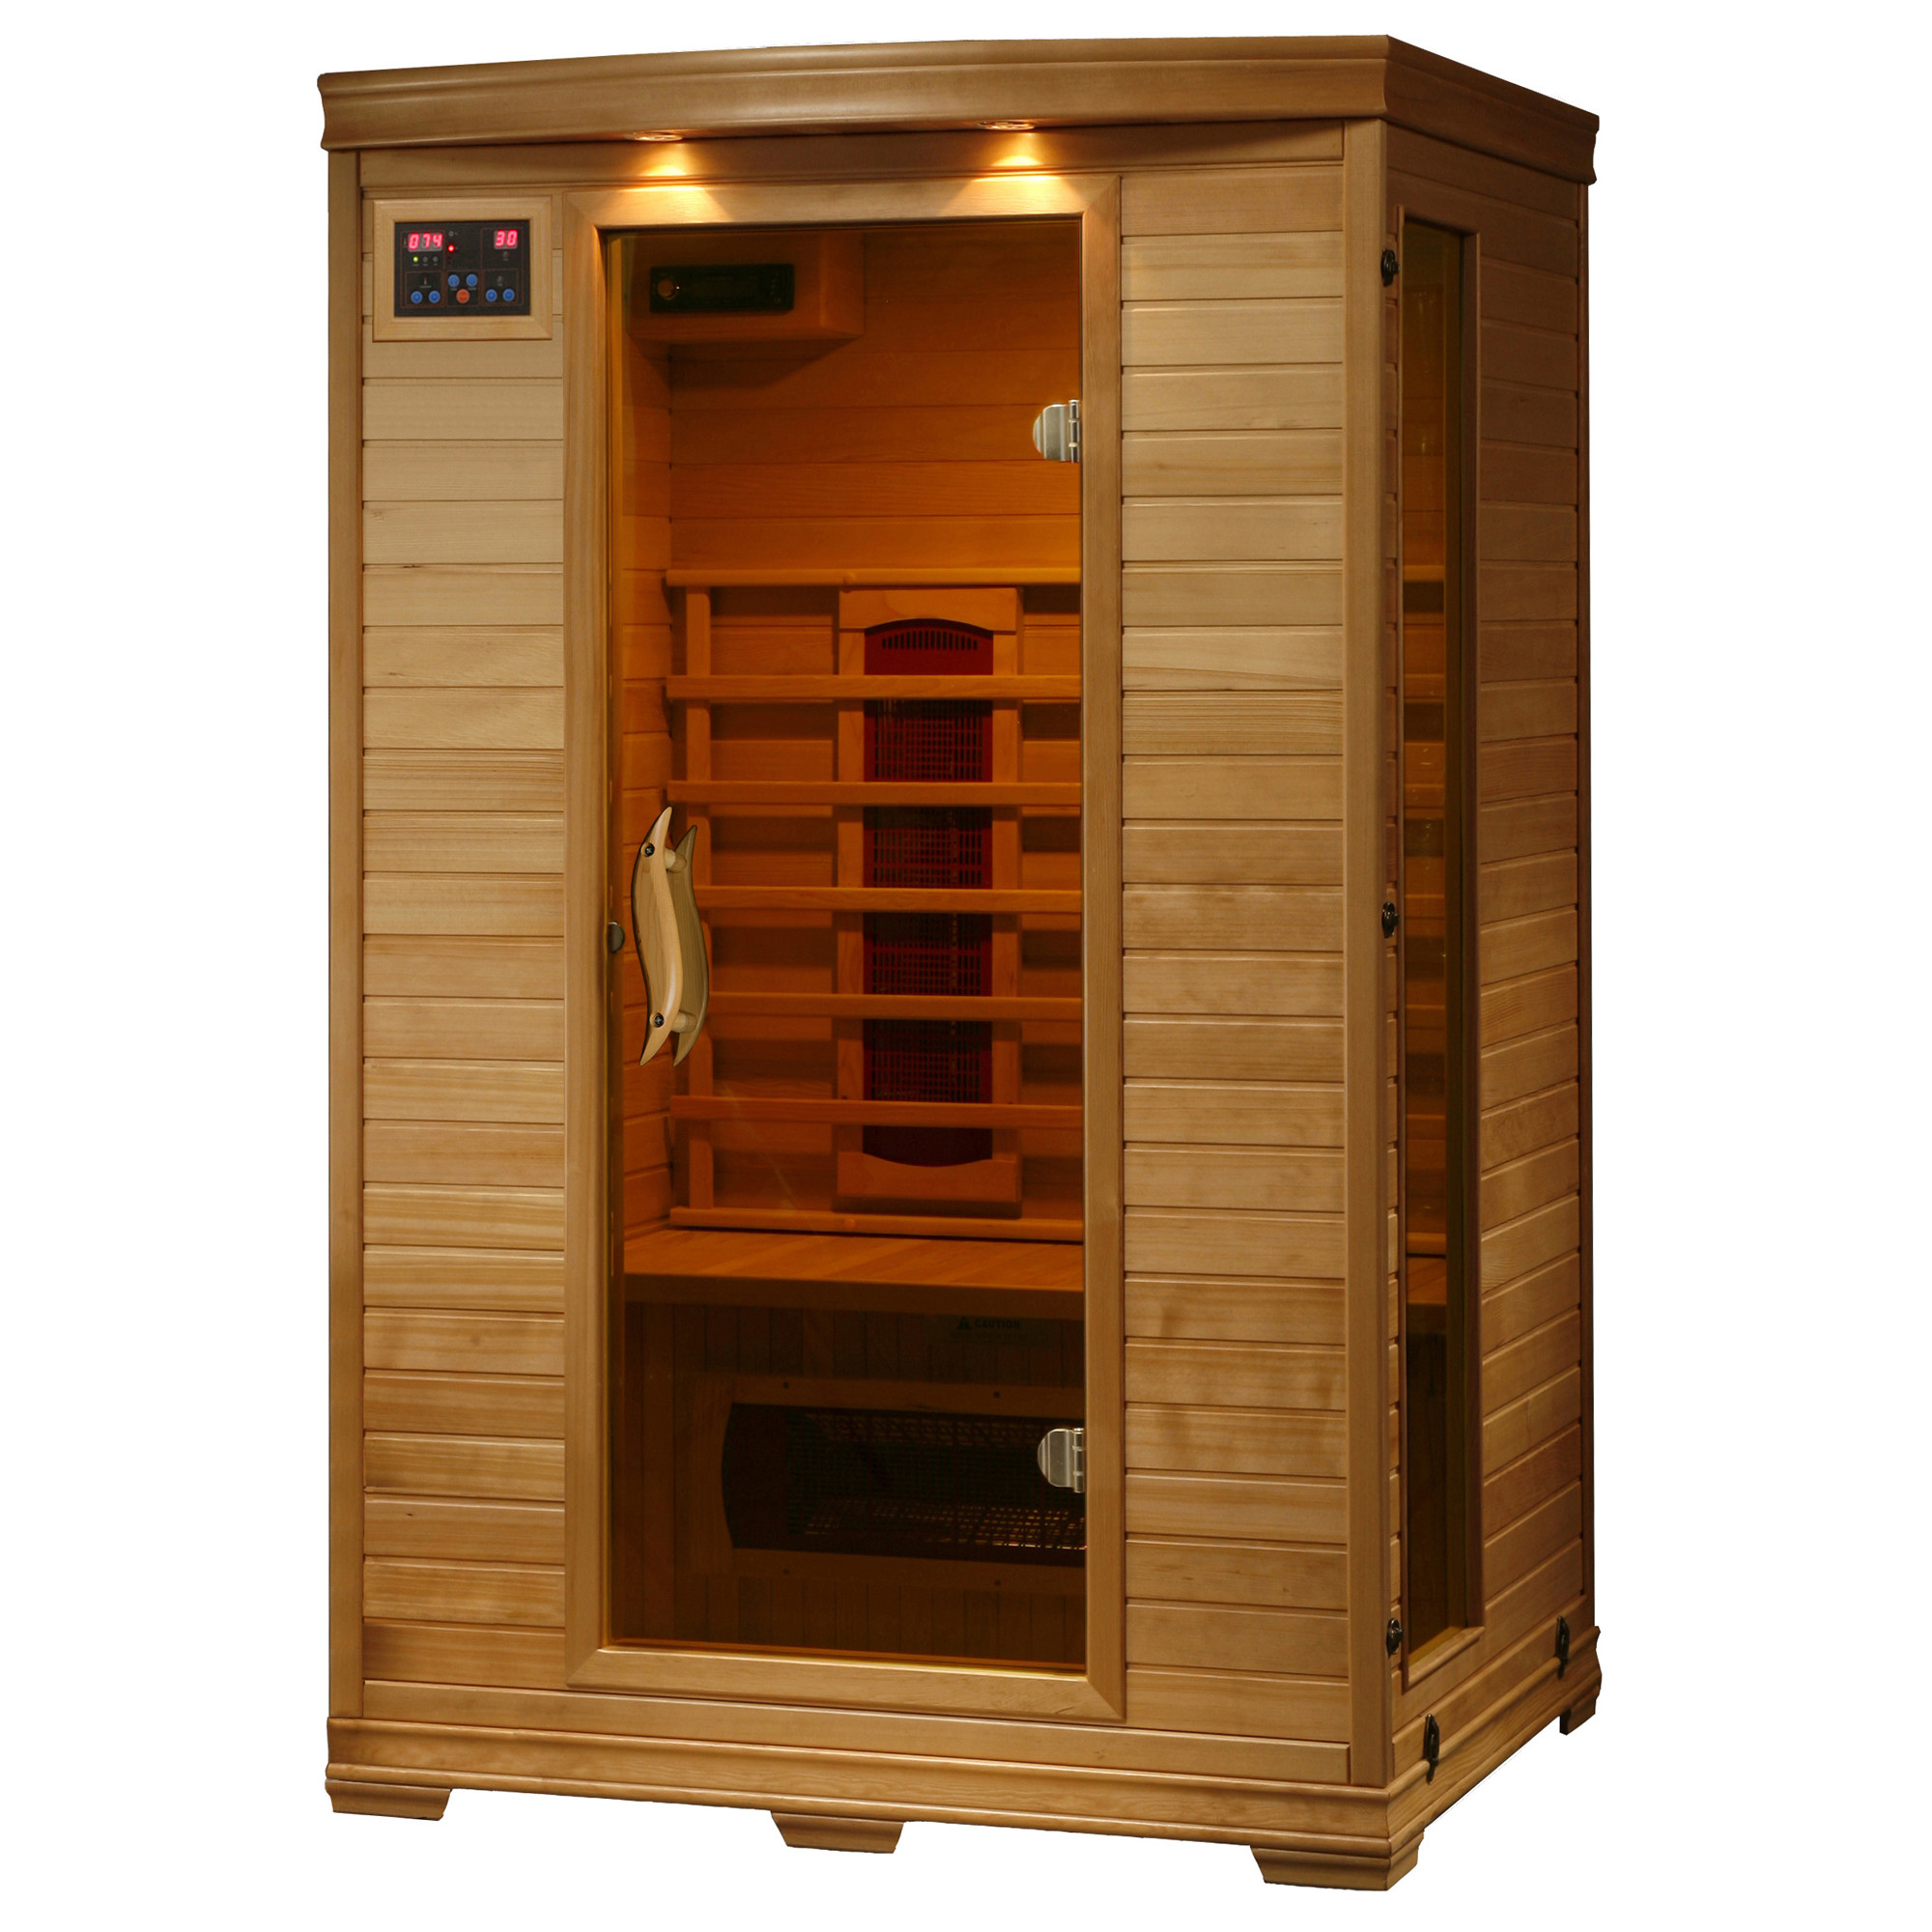 Radiant Saunas Radiant Saunas FAR Infrared 2-Person Hemlock Sauna Room with 5 Heaters, Chromotherapy Lighting, Air Purifier, and Audio System